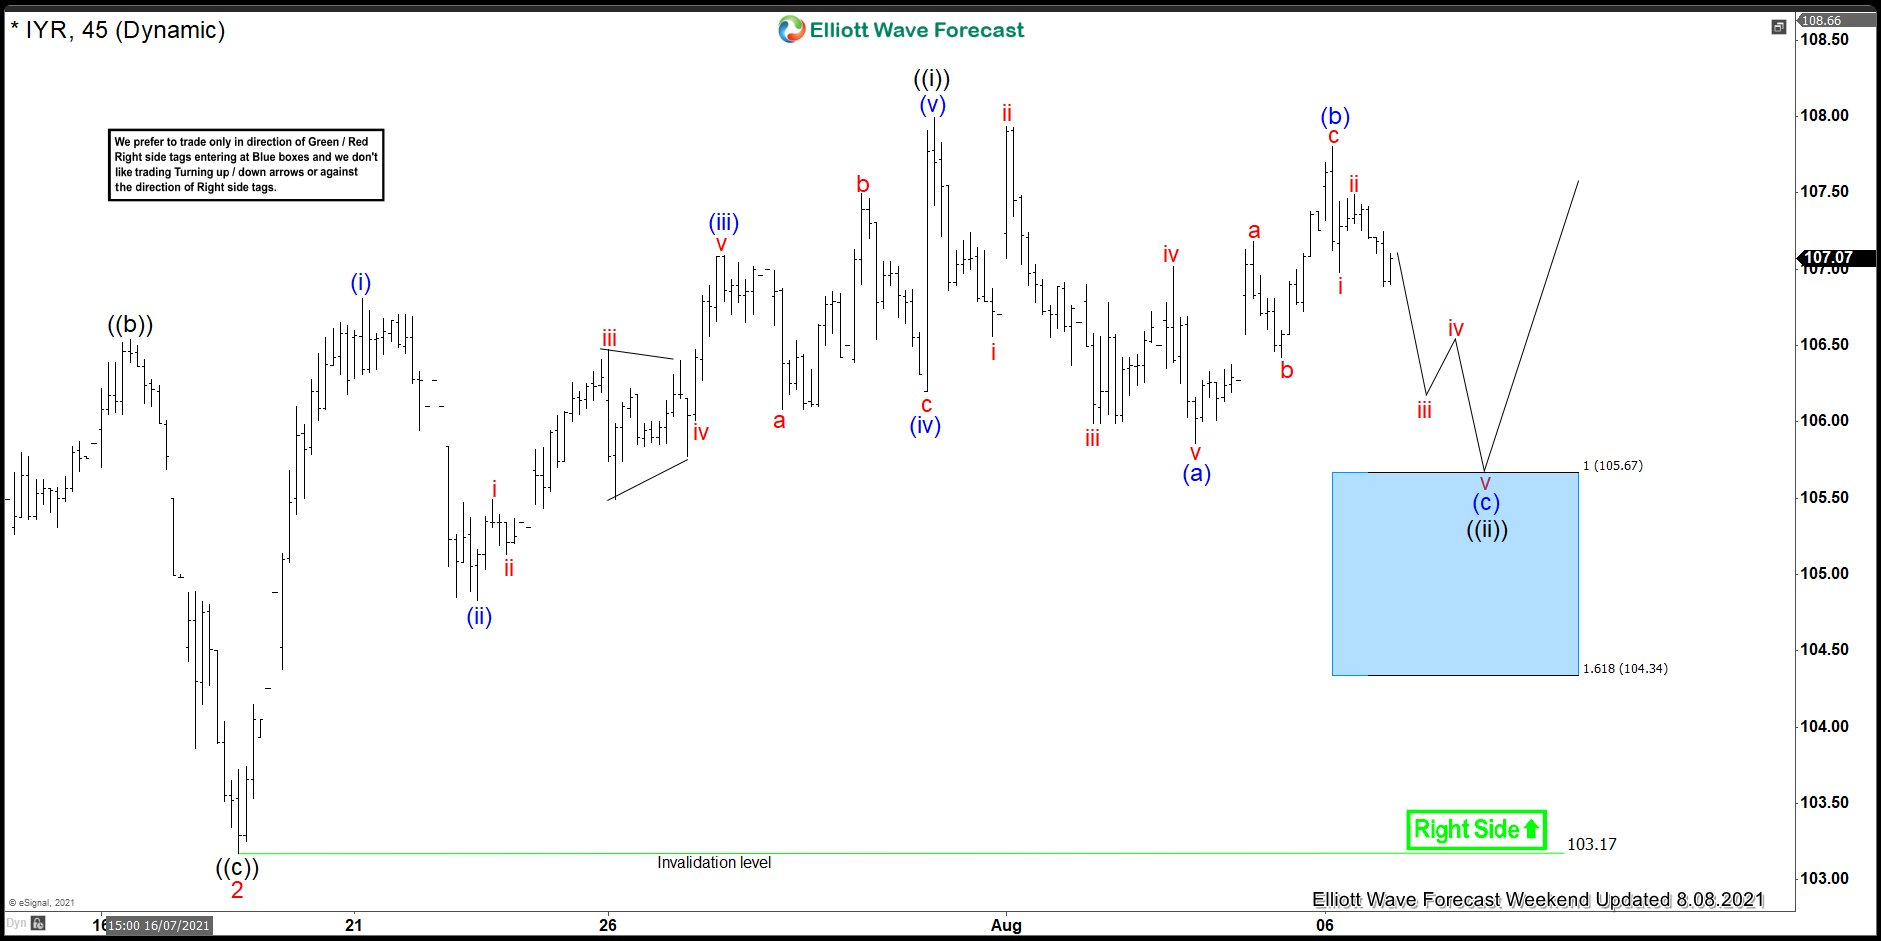 IYR Forecasting The Path & Buying The Dips At The Blue Box